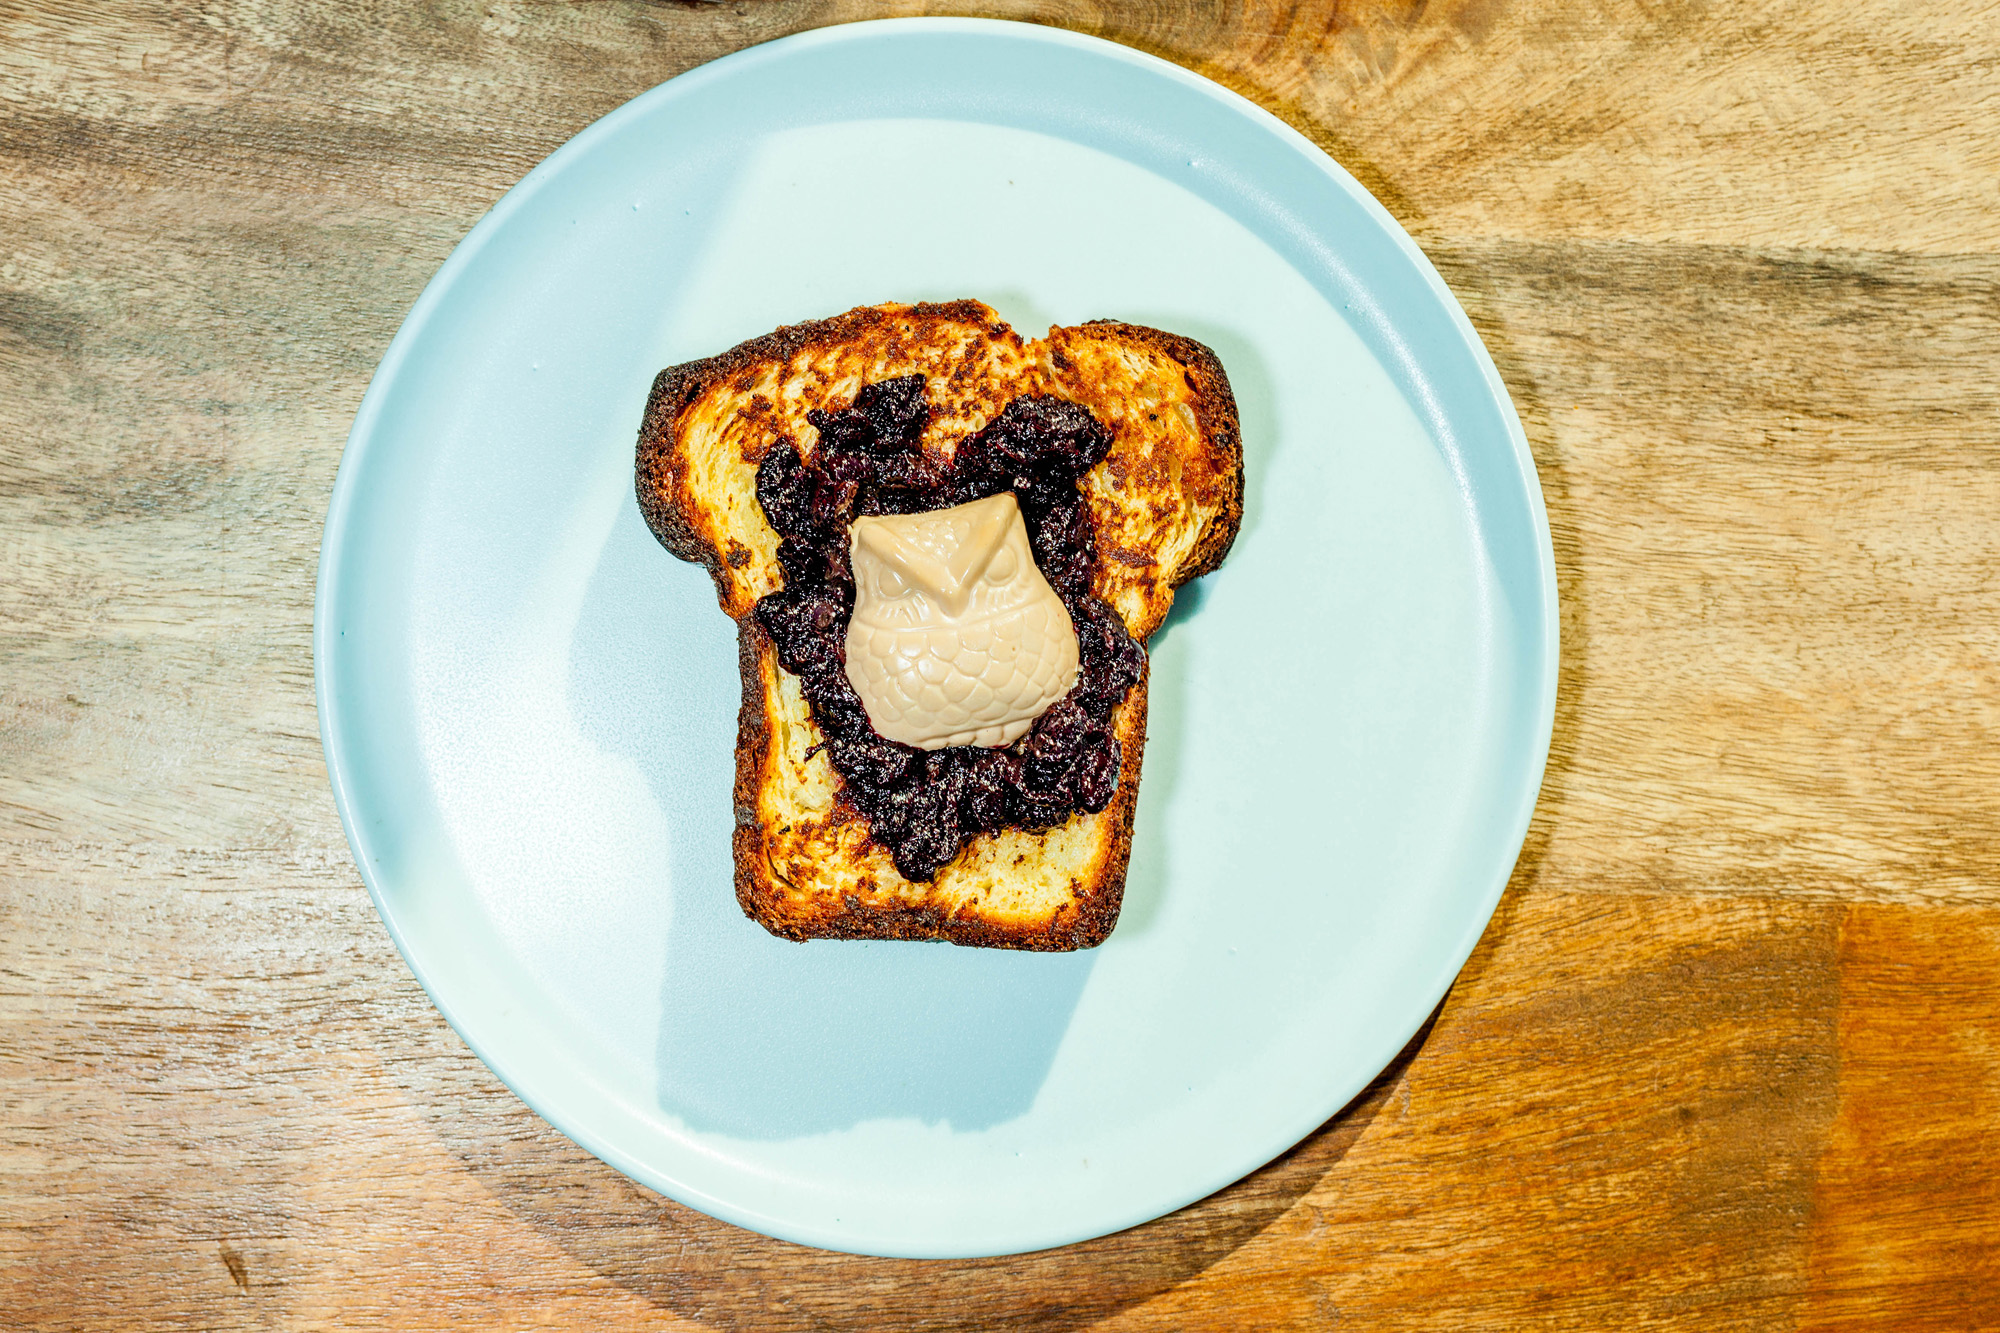 Bunny, the Mico Bakery's Iliana Regan Makes the Most Adorable Toast in Town